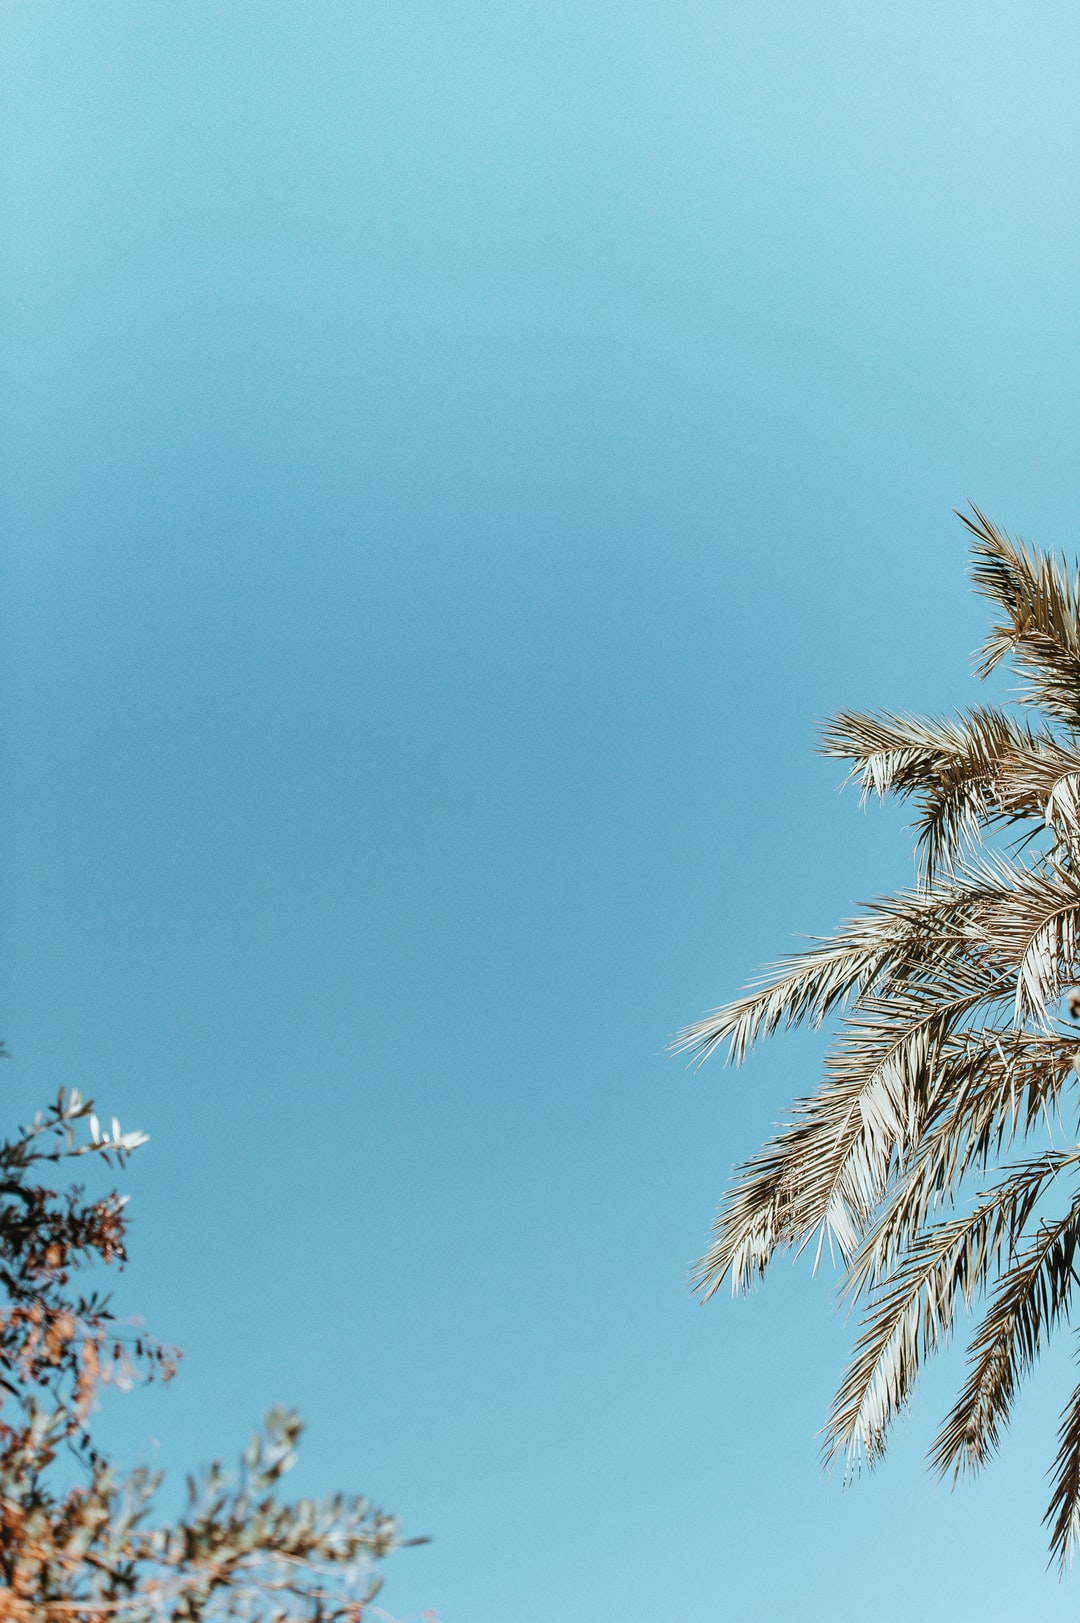 Blue sky, palm tree,blank space